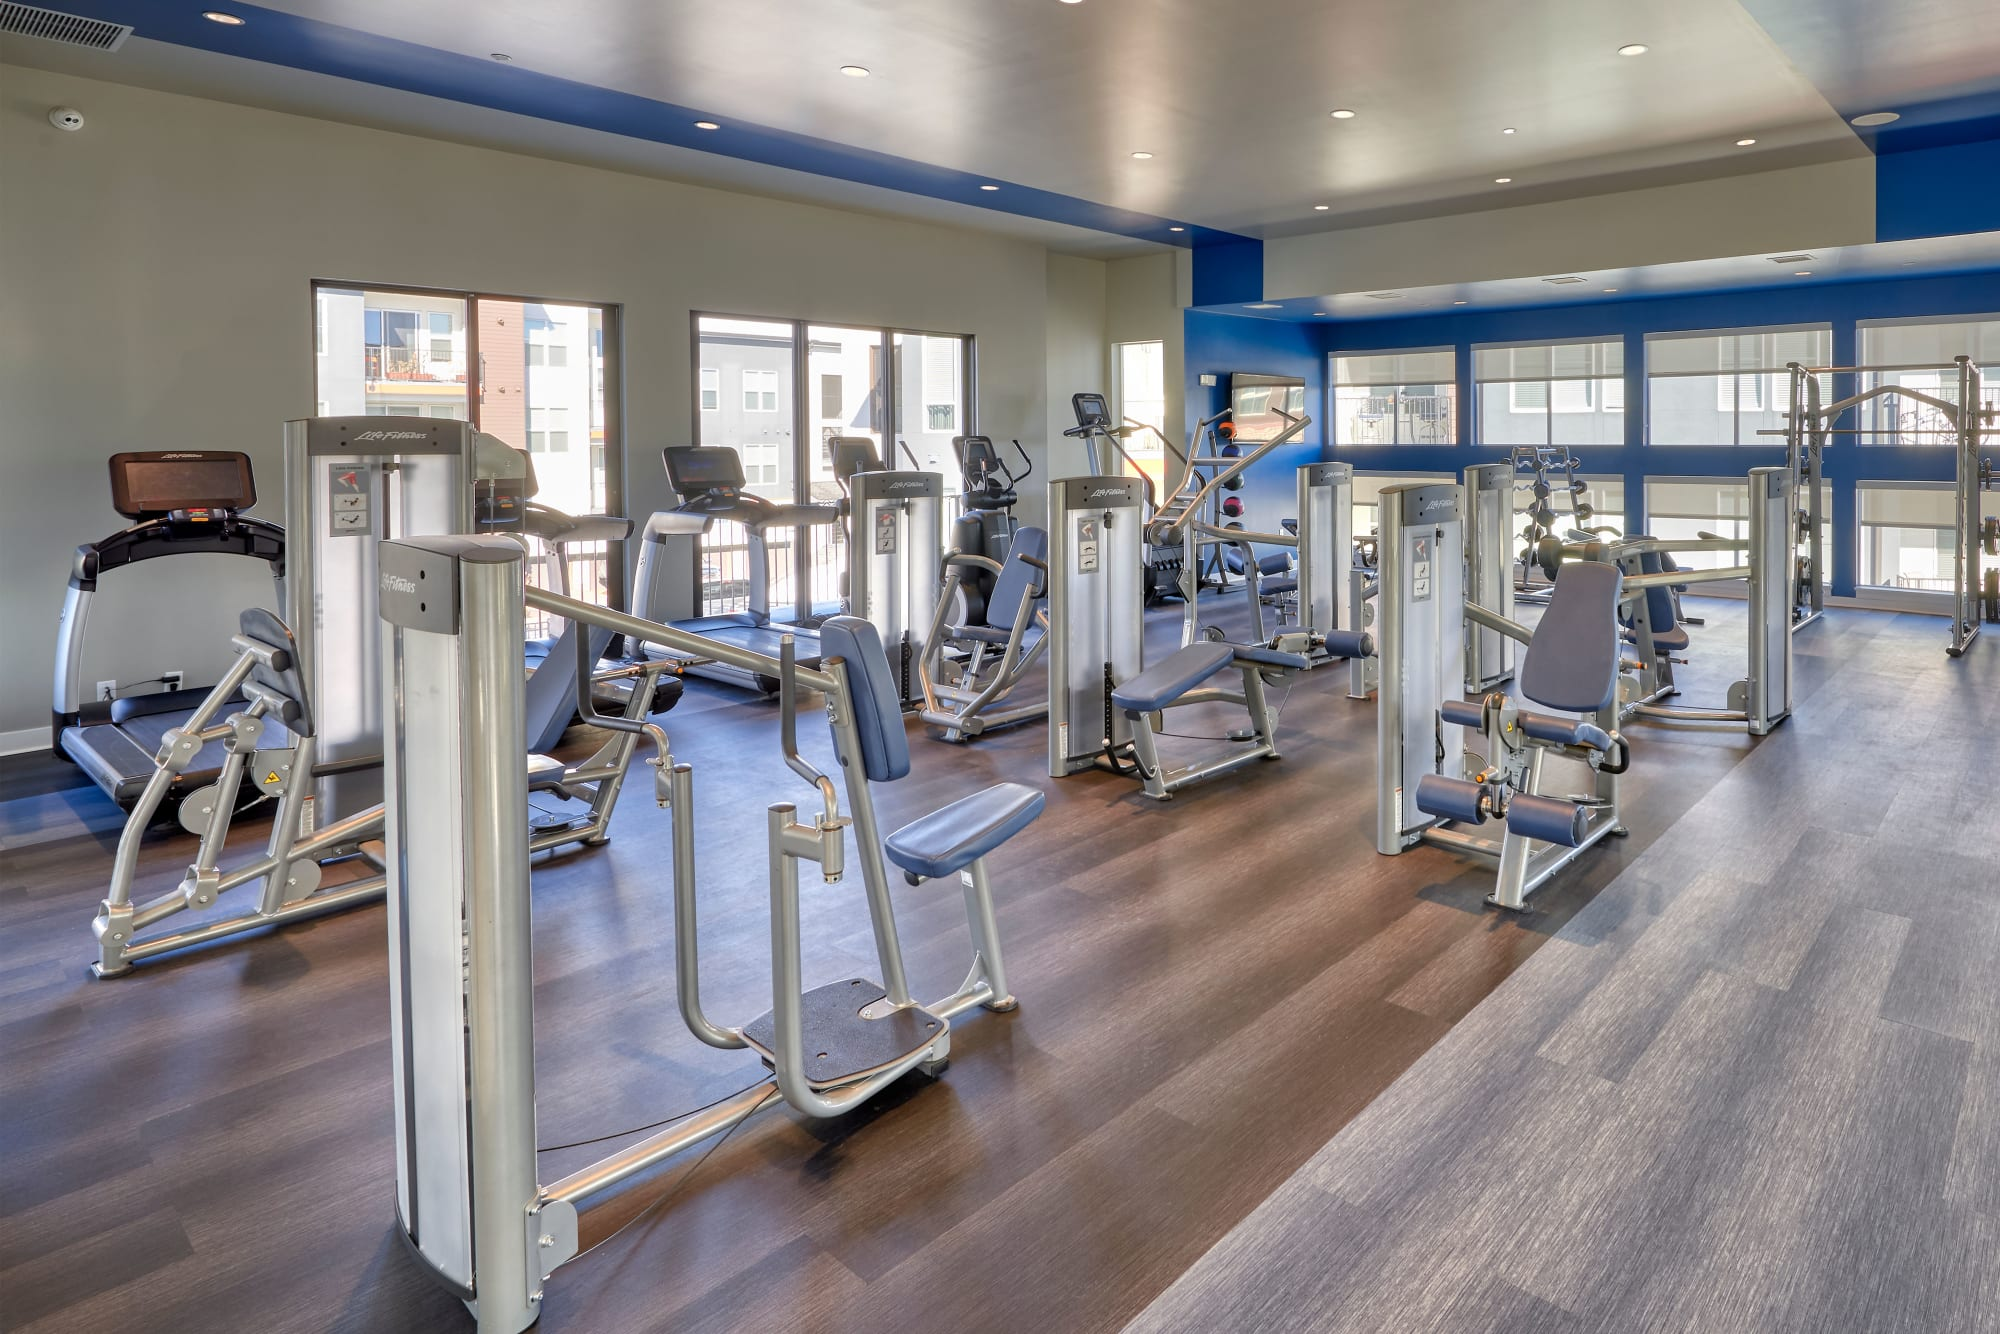 The comprehensive 24 hour fitness center at Elevate in Englewood, Colorado